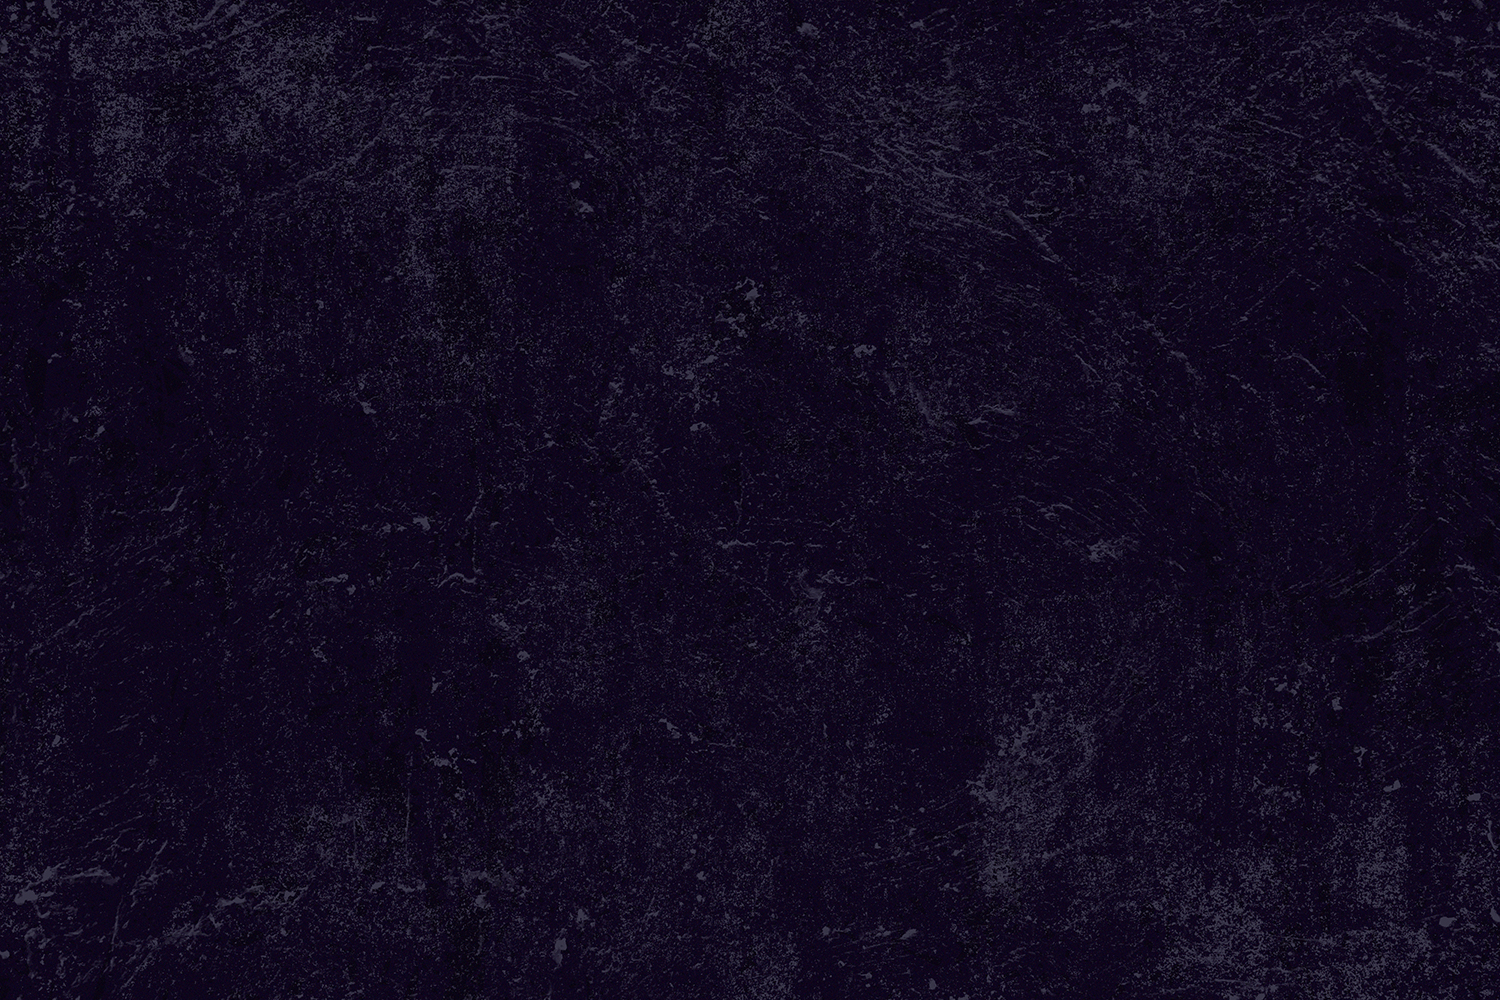 Grunge Texture Backgrounds example image 19